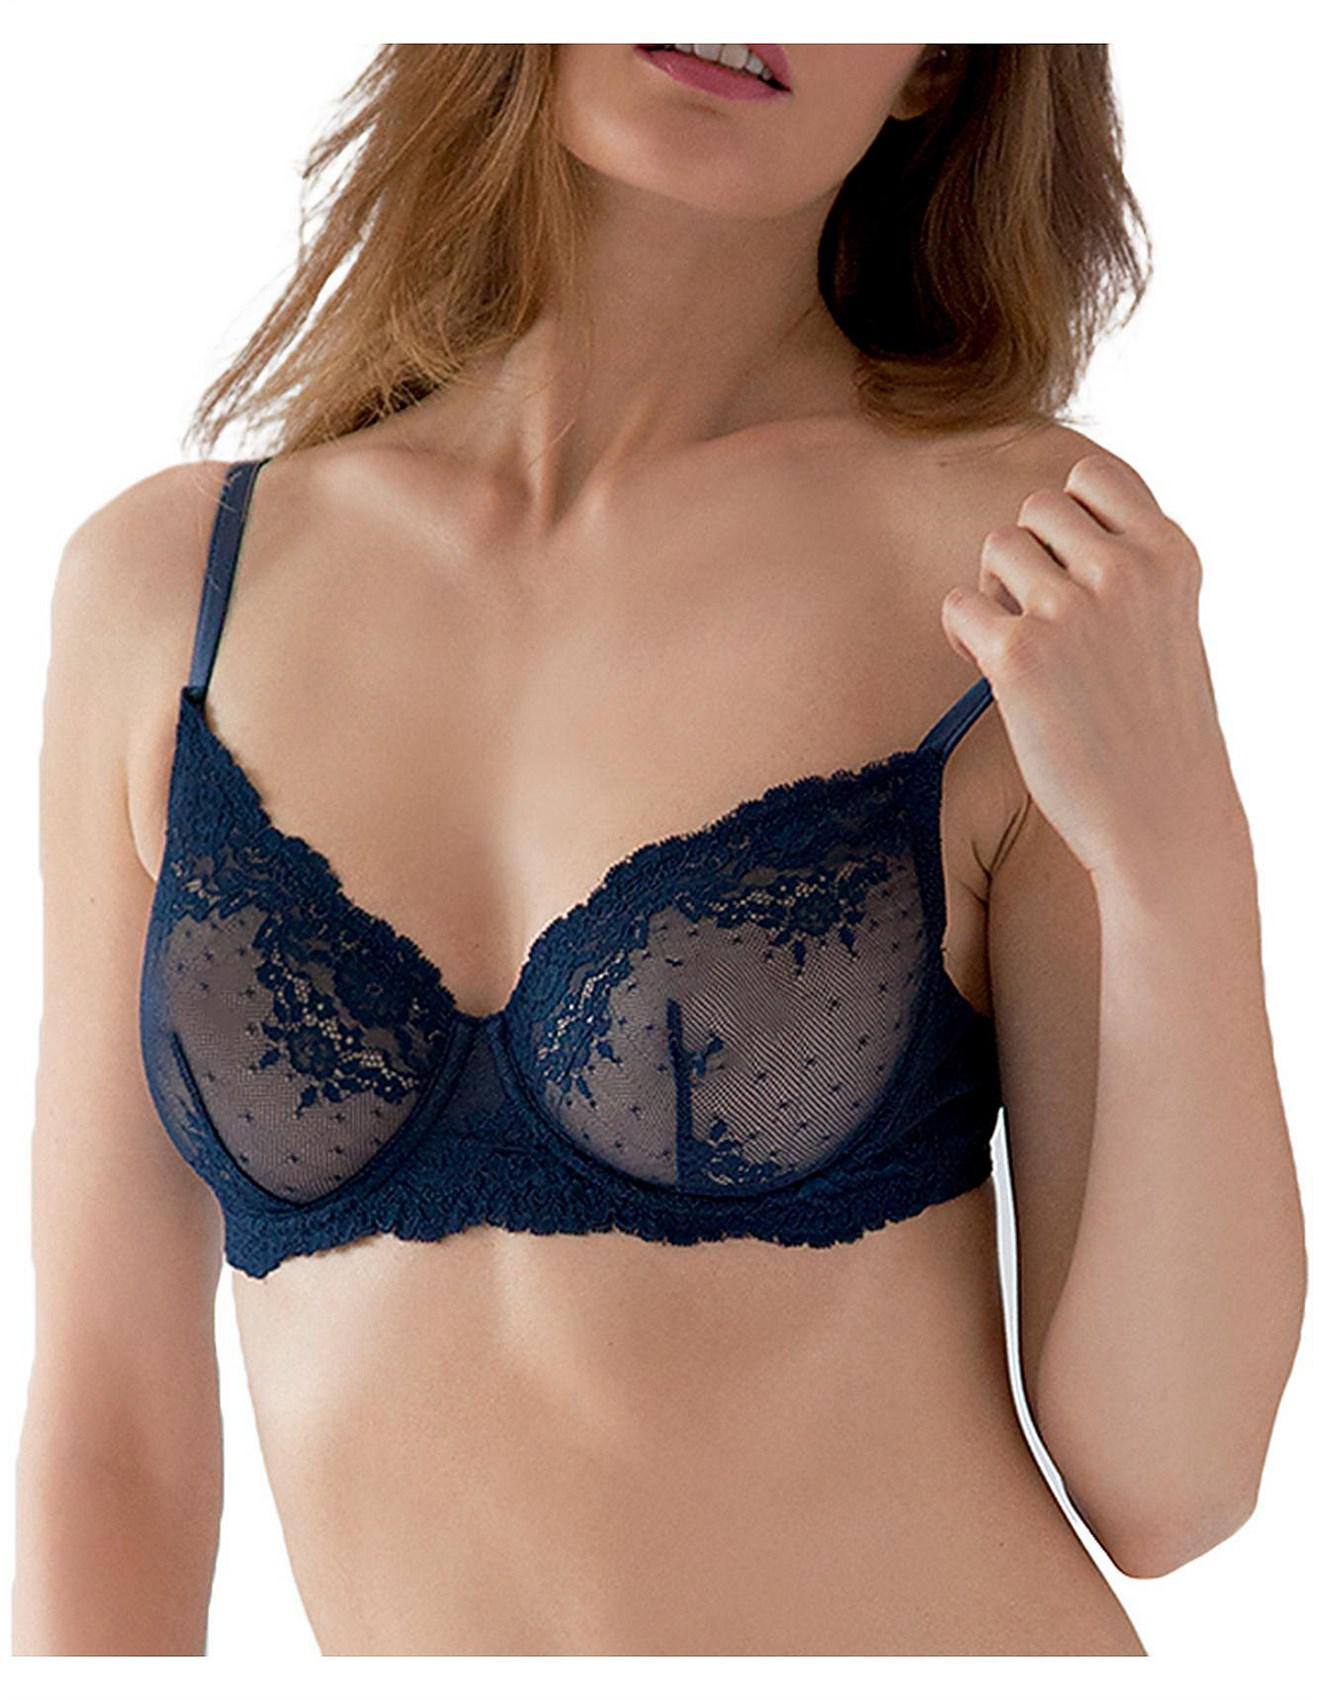 e294cce04cfd0 Mimi Holliday by Damaris Pinball Comfort Bra in Blue - Save 67% - Lyst